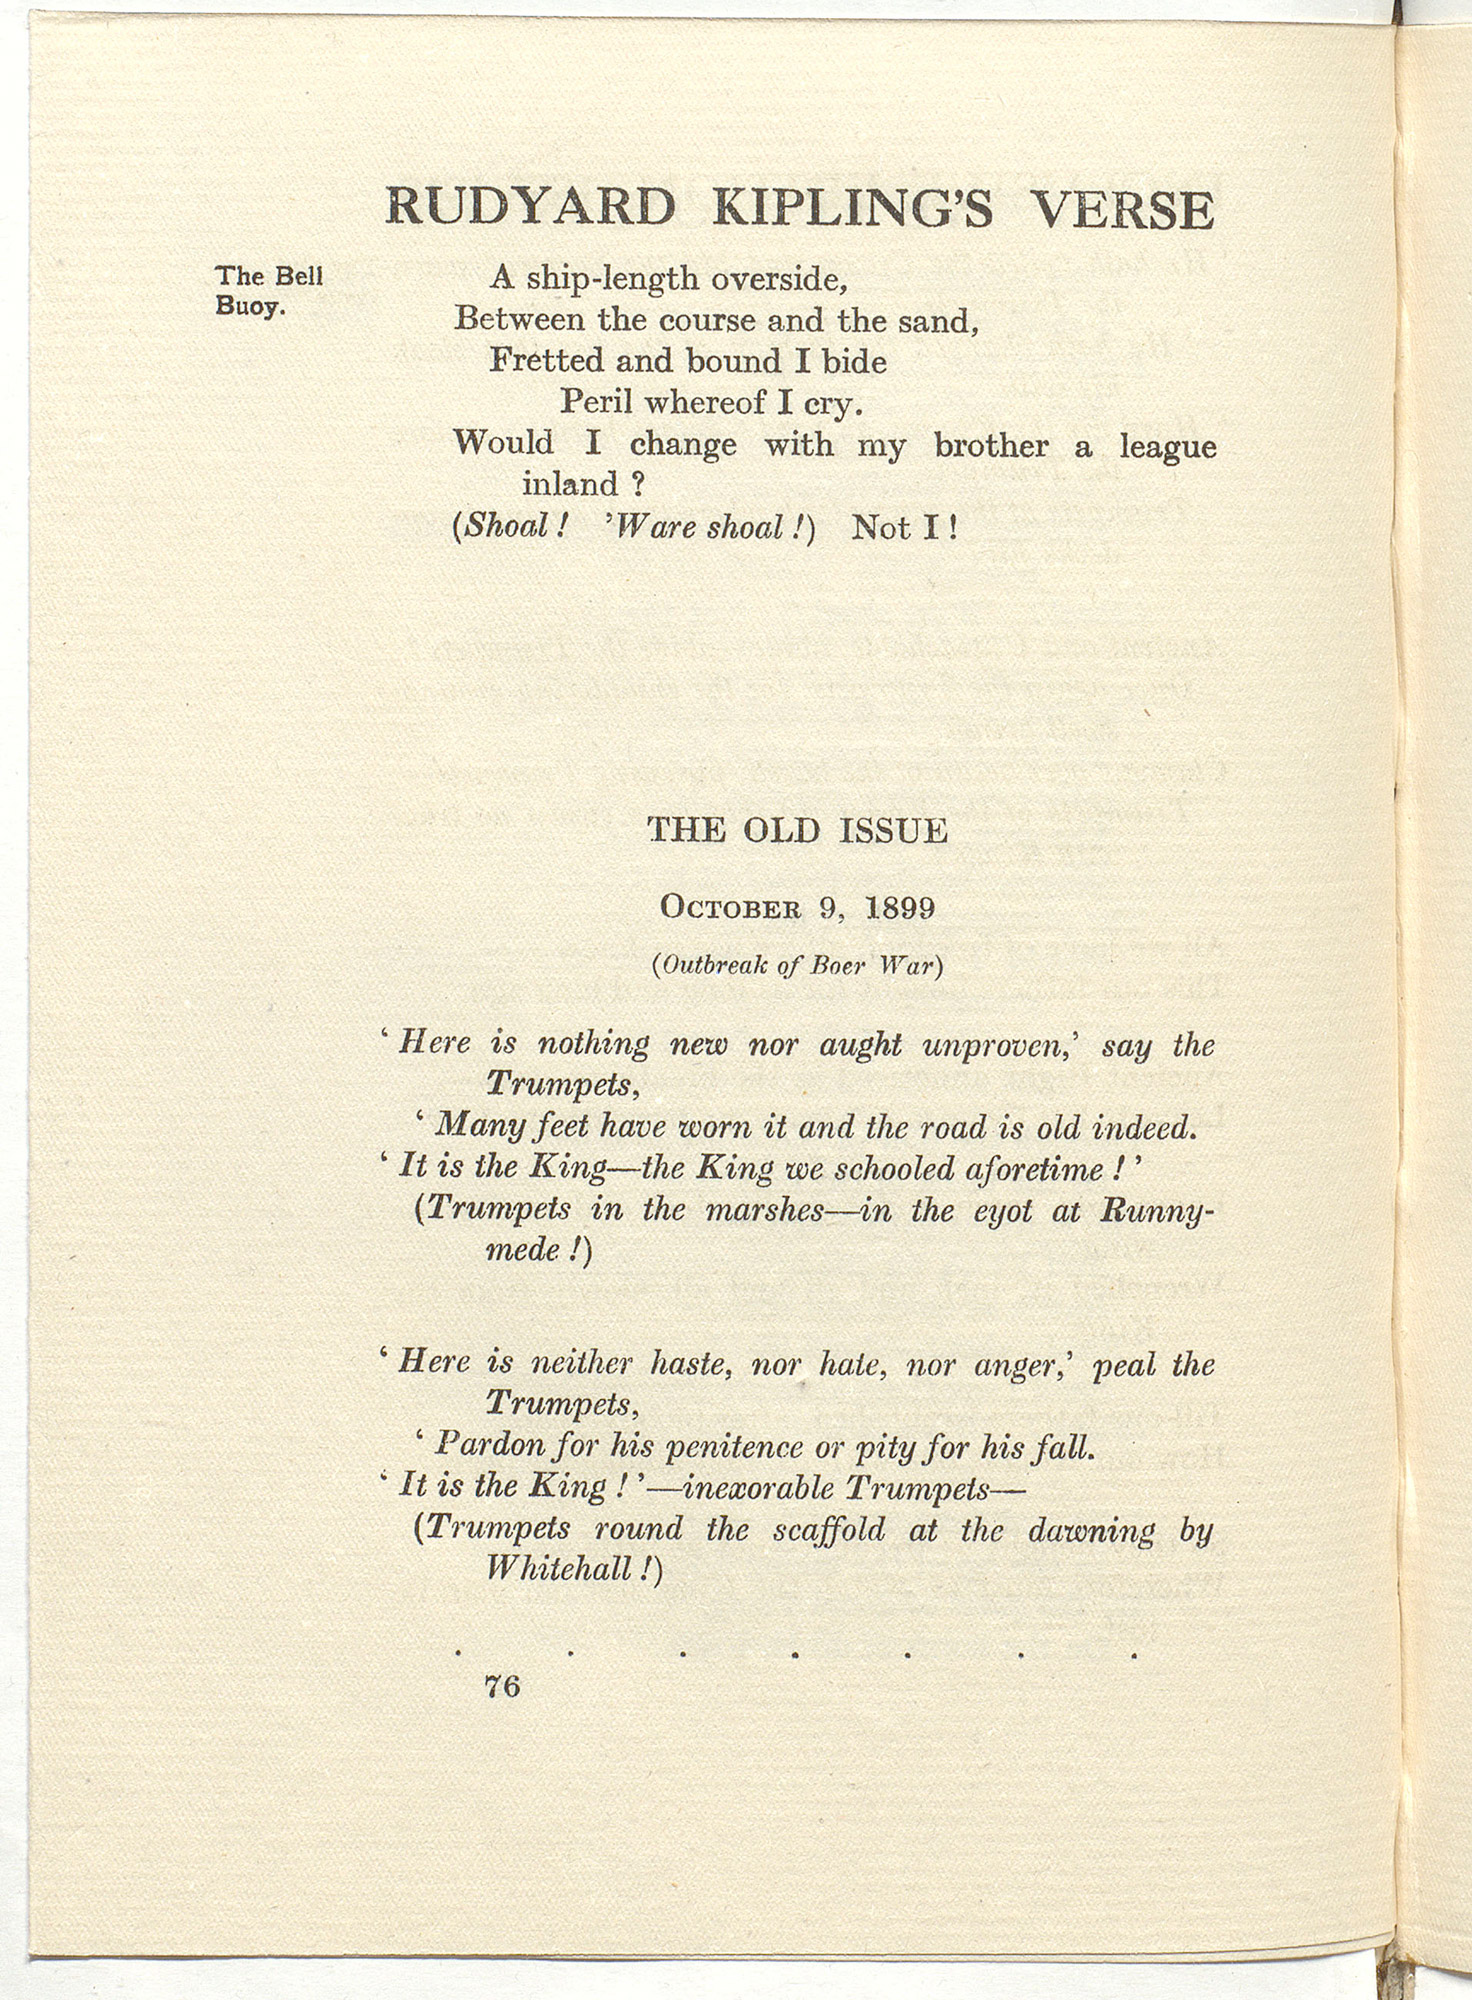 Rudyard Kipling's own copy of his poem 'The Old Issue: October 9, 1899'